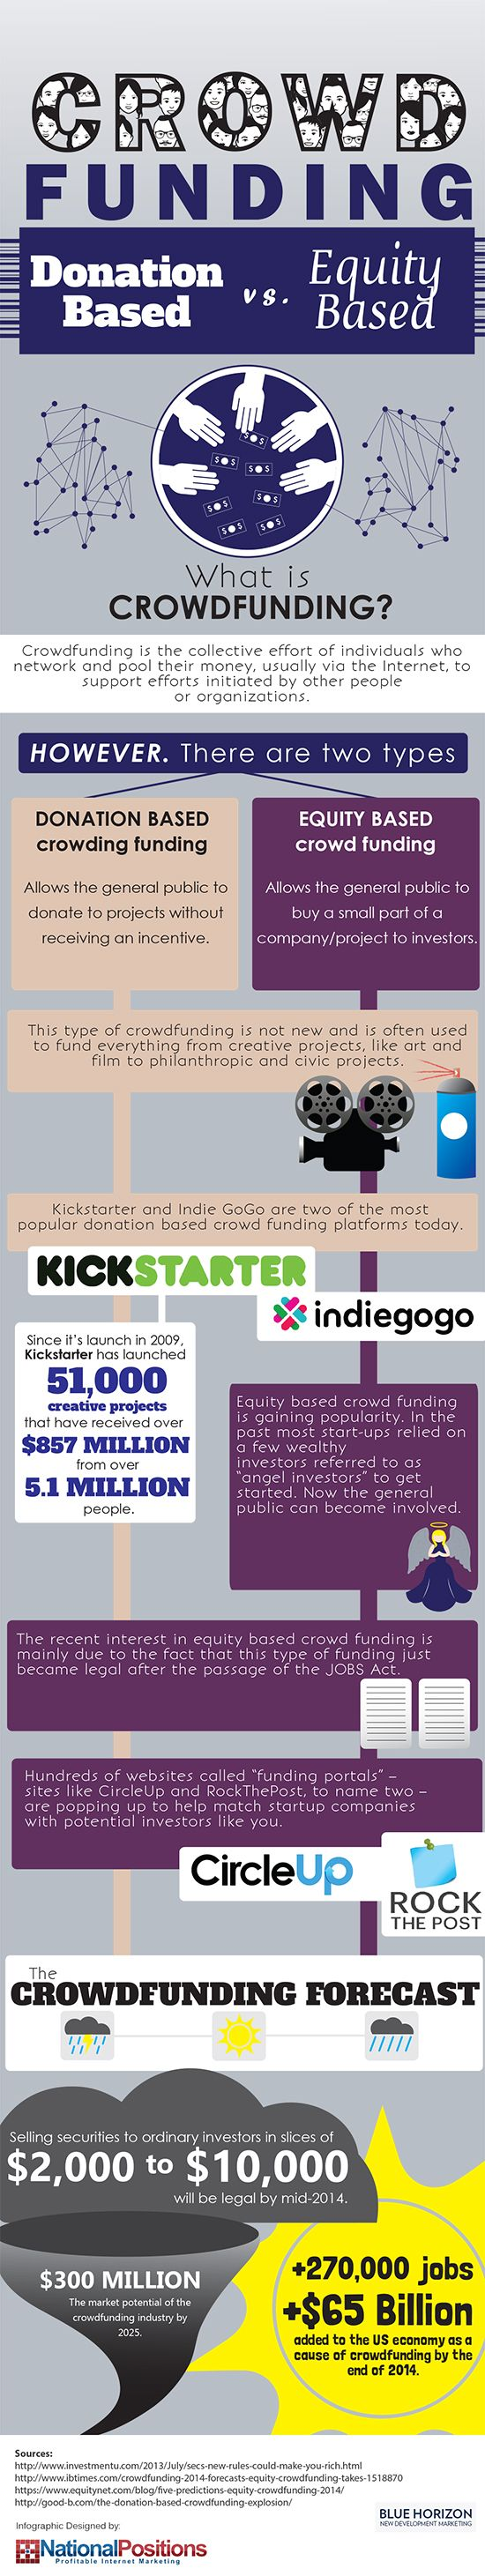 Infographic Explains Difference Between Equity and Donated-Based Crowdfunding